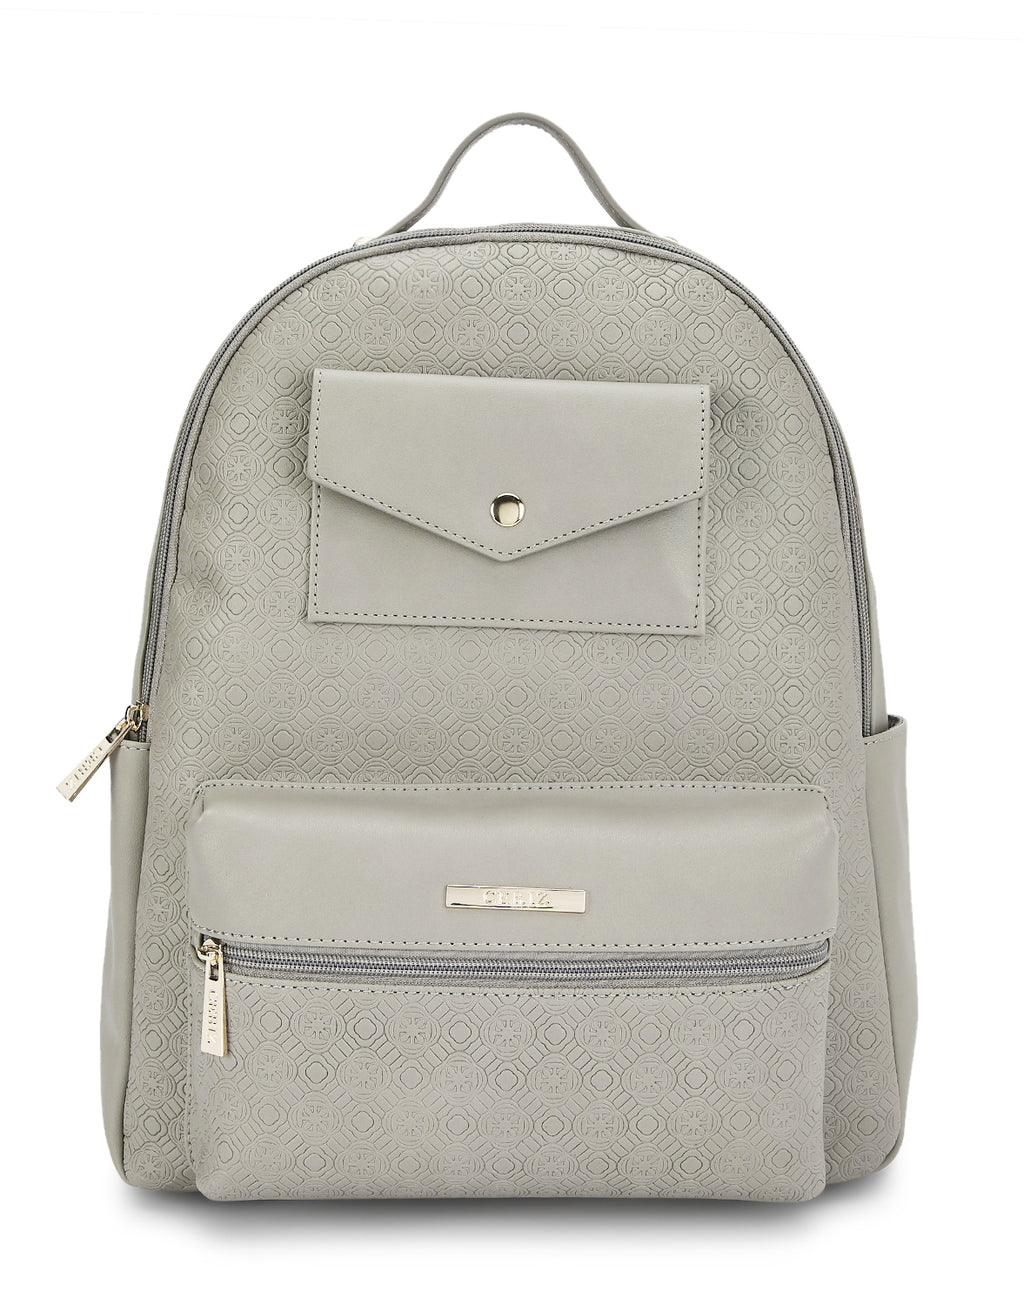 Estee Beau Grey Backpack